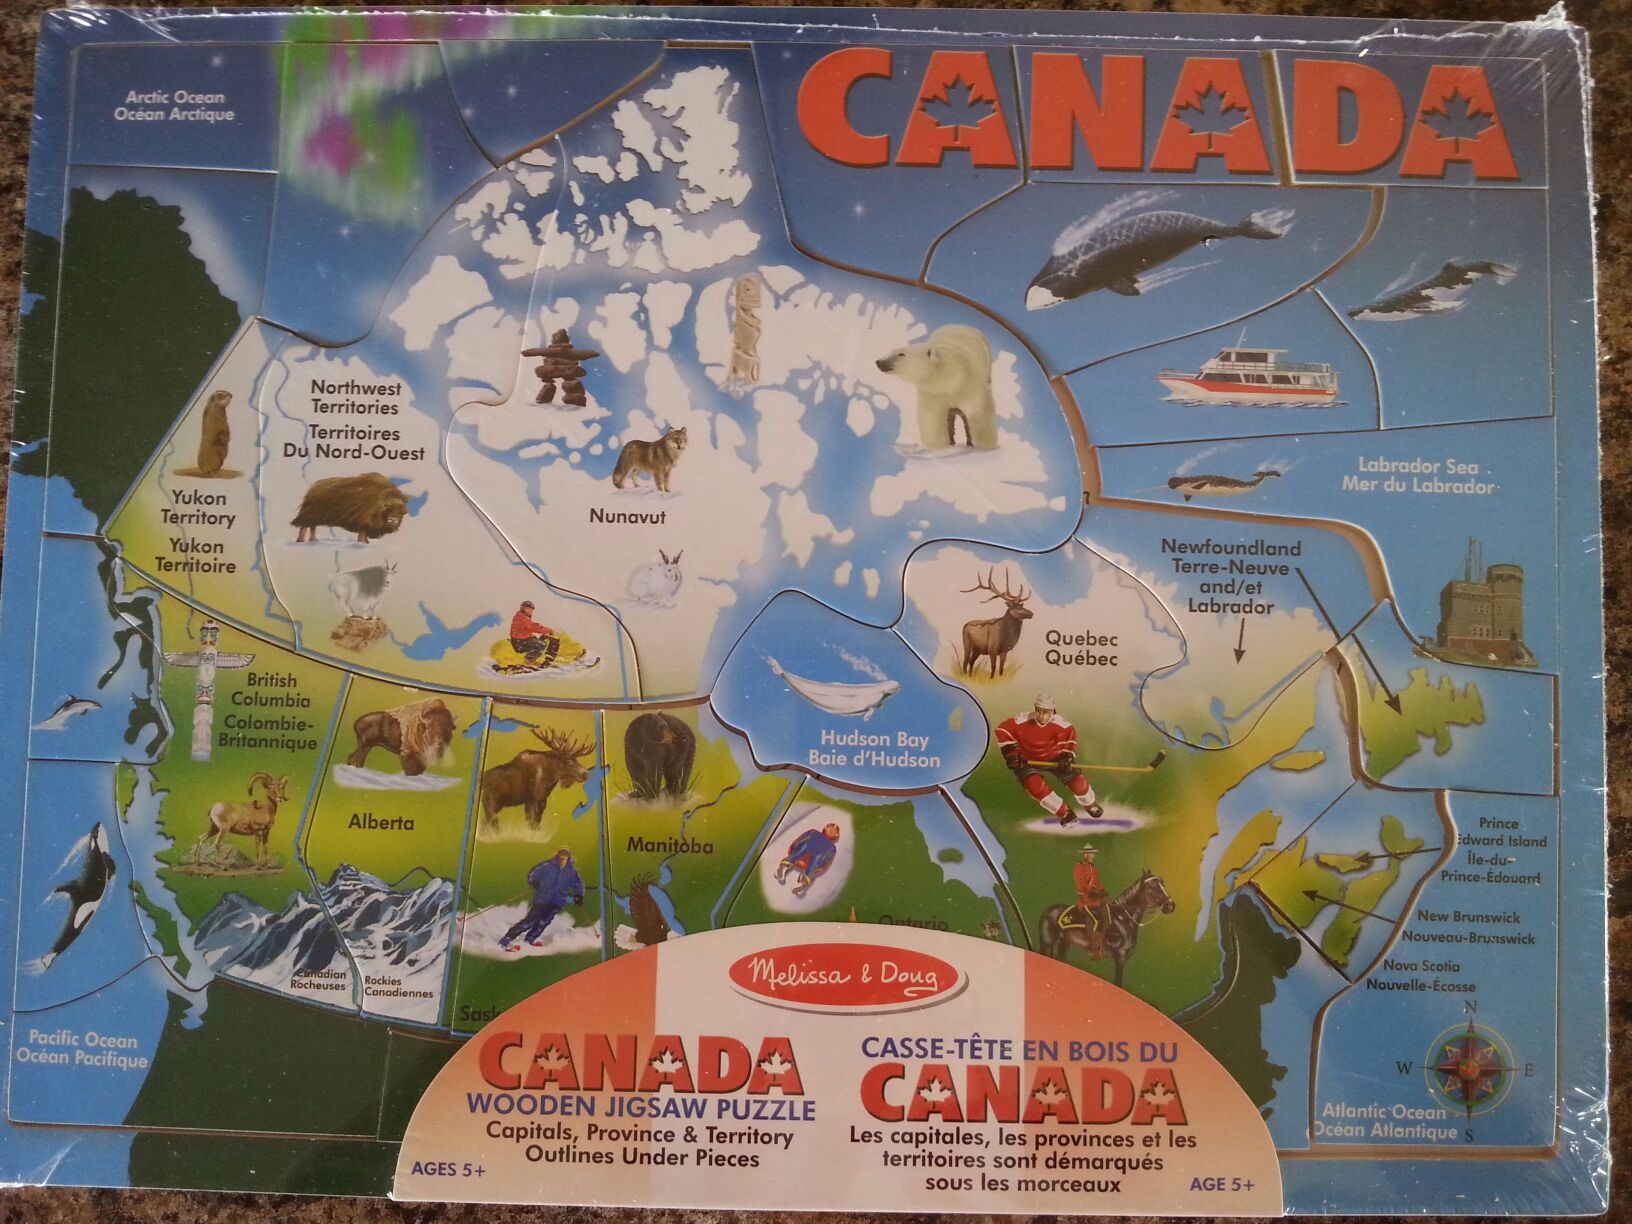 Puzzle - Map of Canada Board Game front image (front cover)